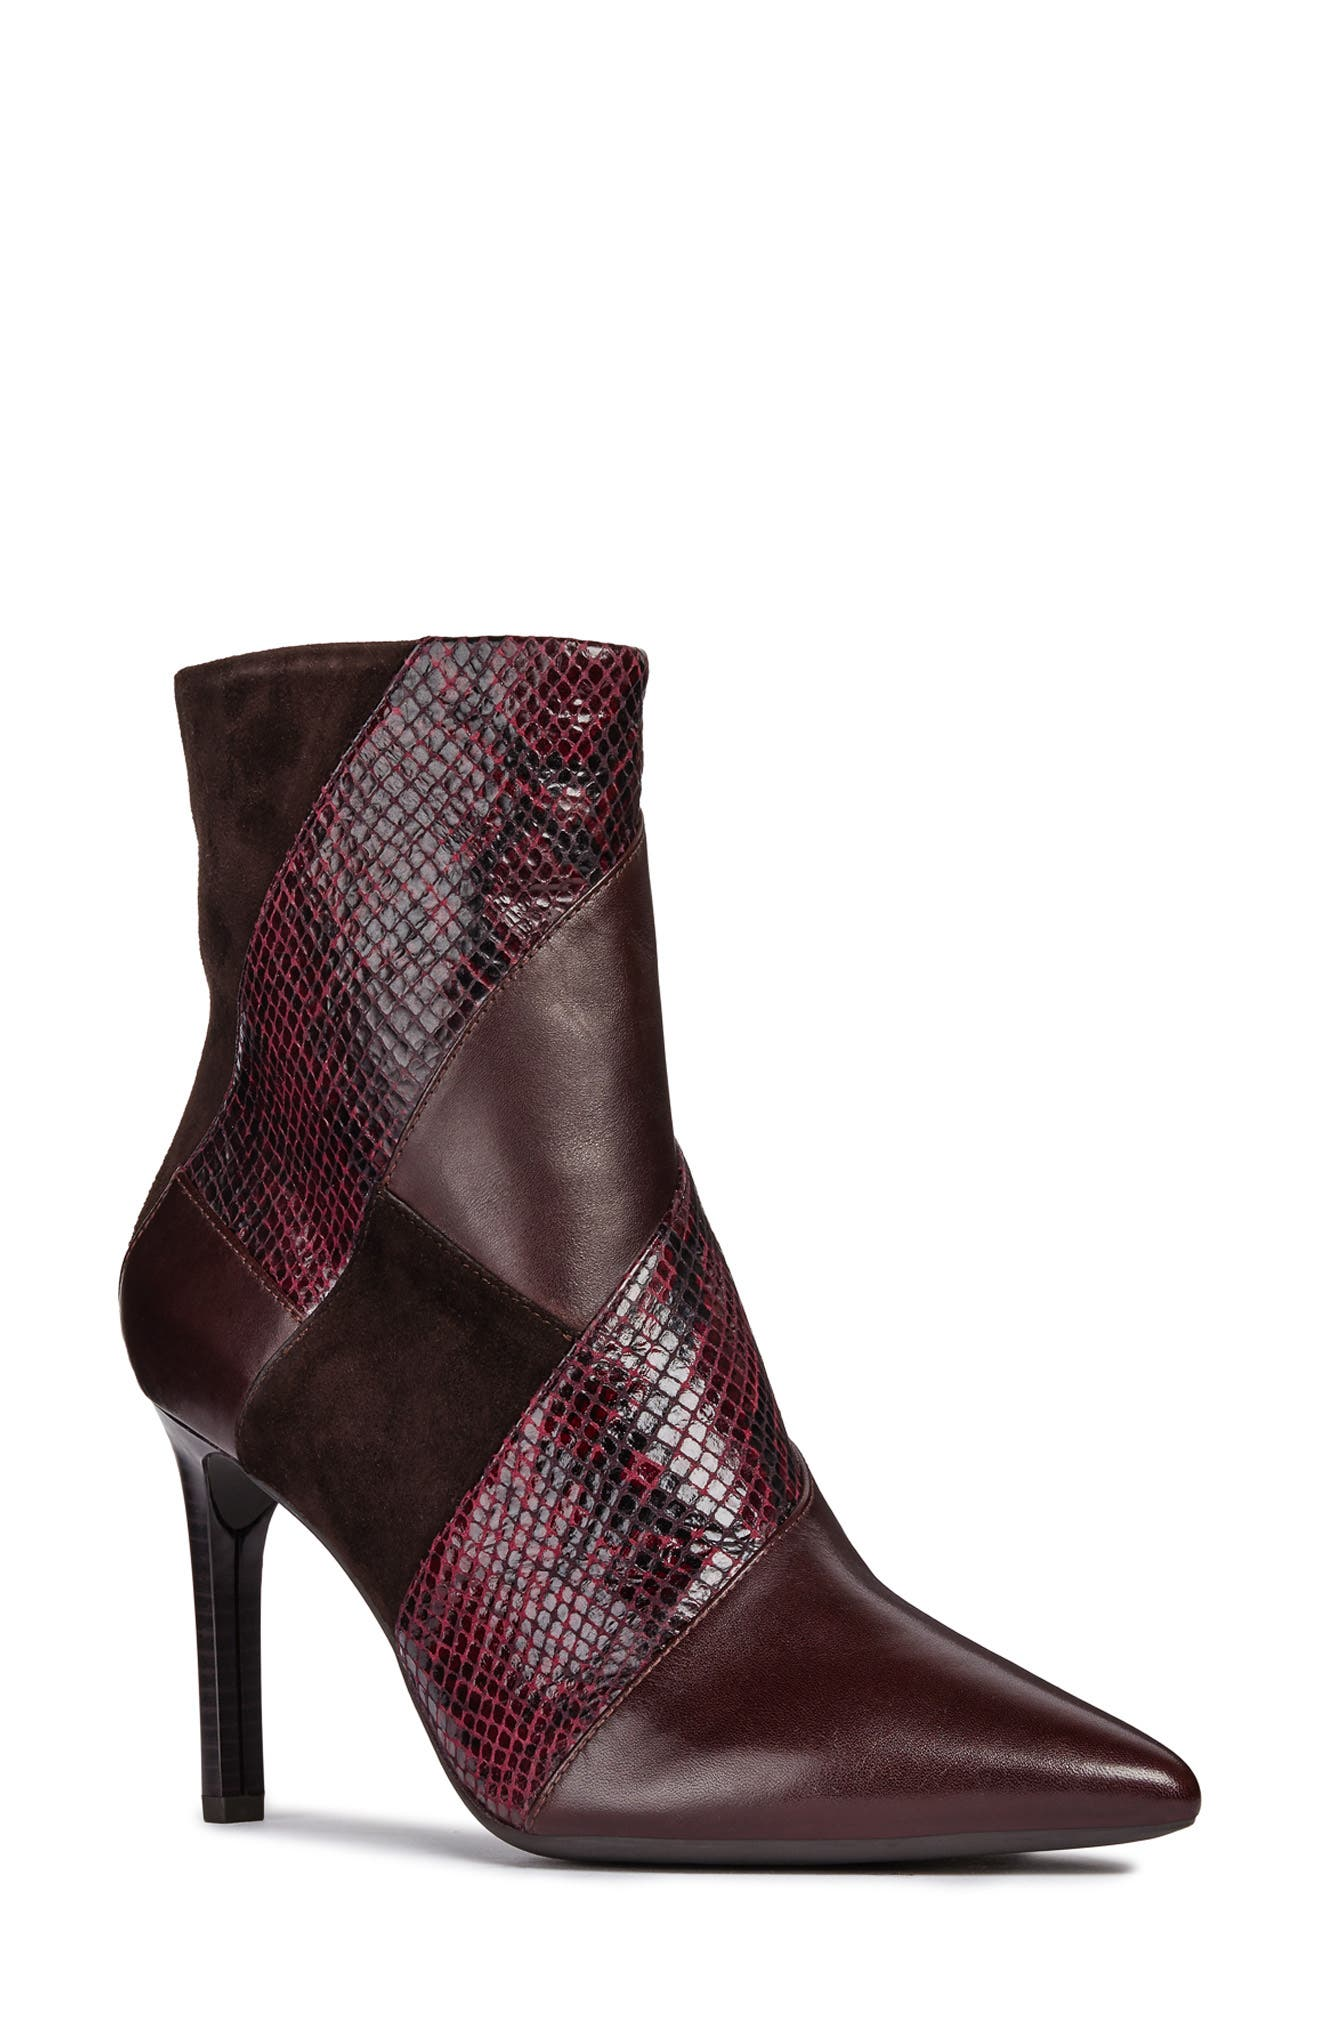 Faviola Bootie,                             Main thumbnail 1, color,                             DARK BURGUNDY LEATHER